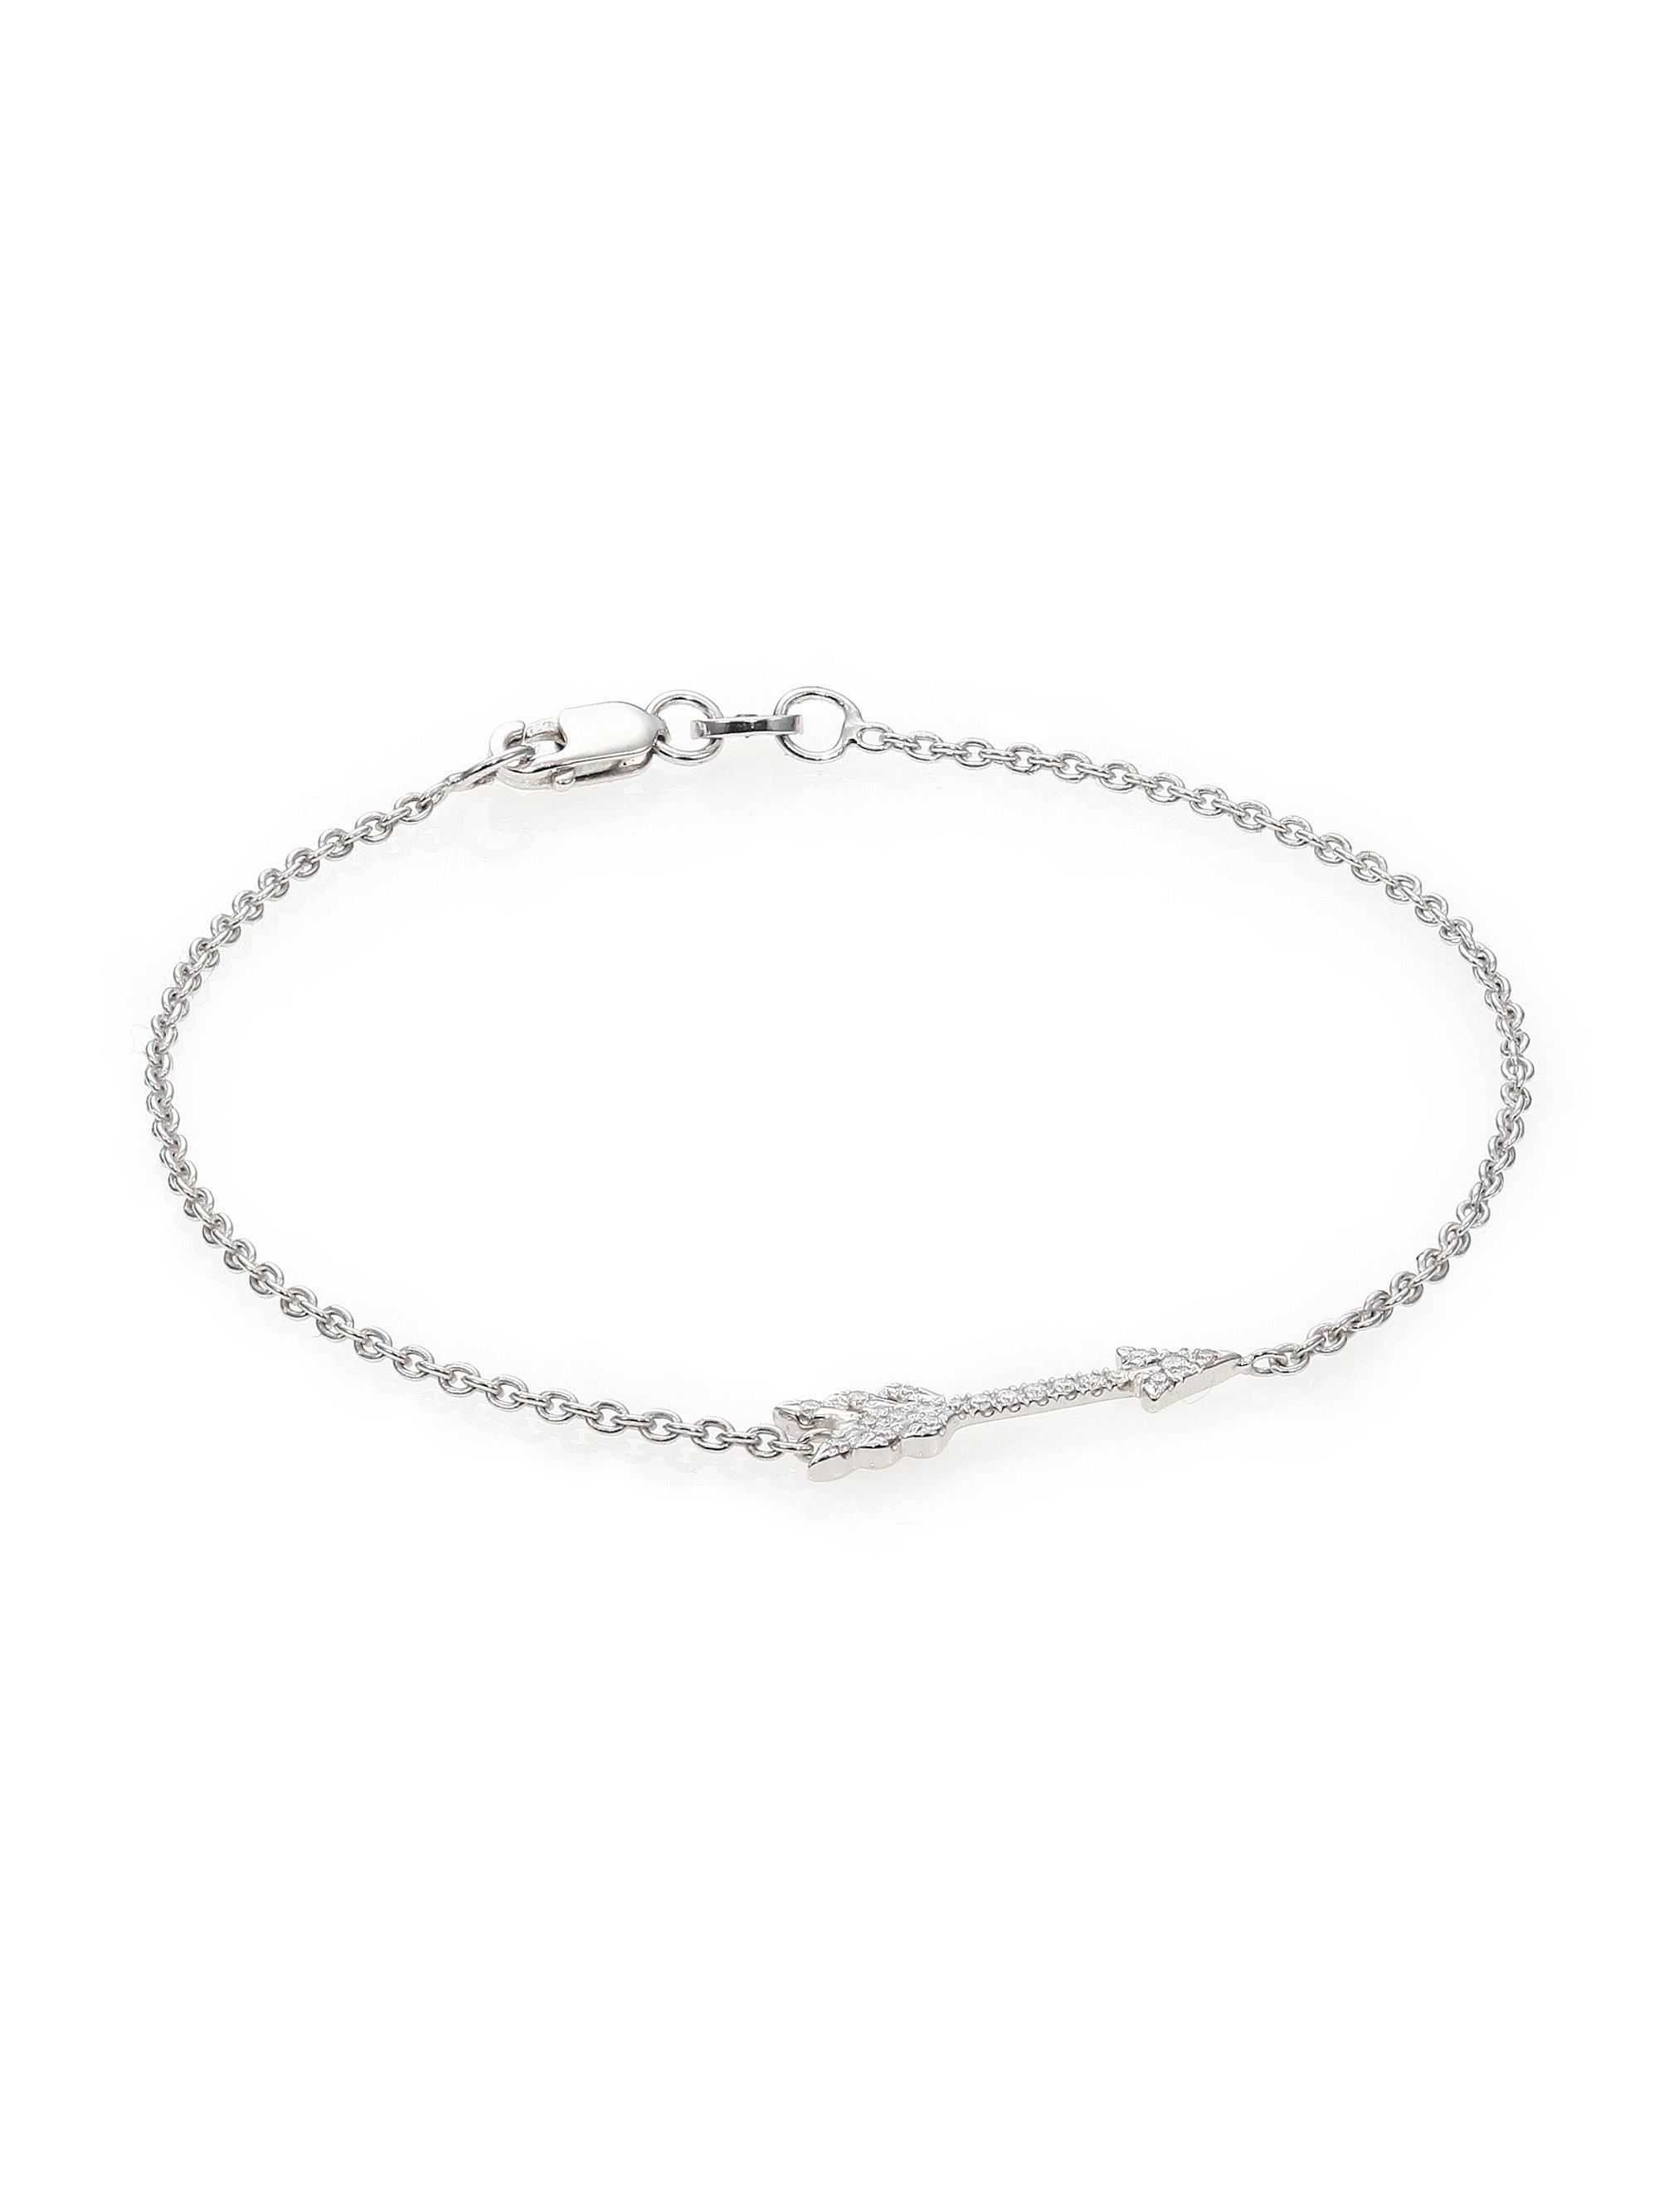 designer the fotor anklet diamond silver rose gold product sterling palkee img